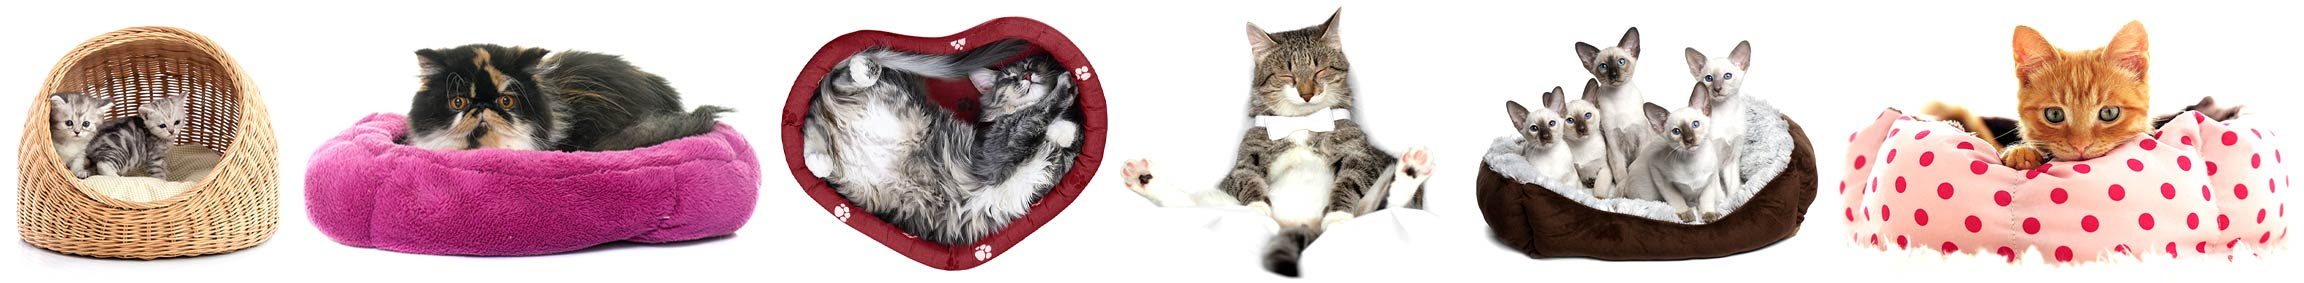 Cute cats and kittens sleeping on cat beds